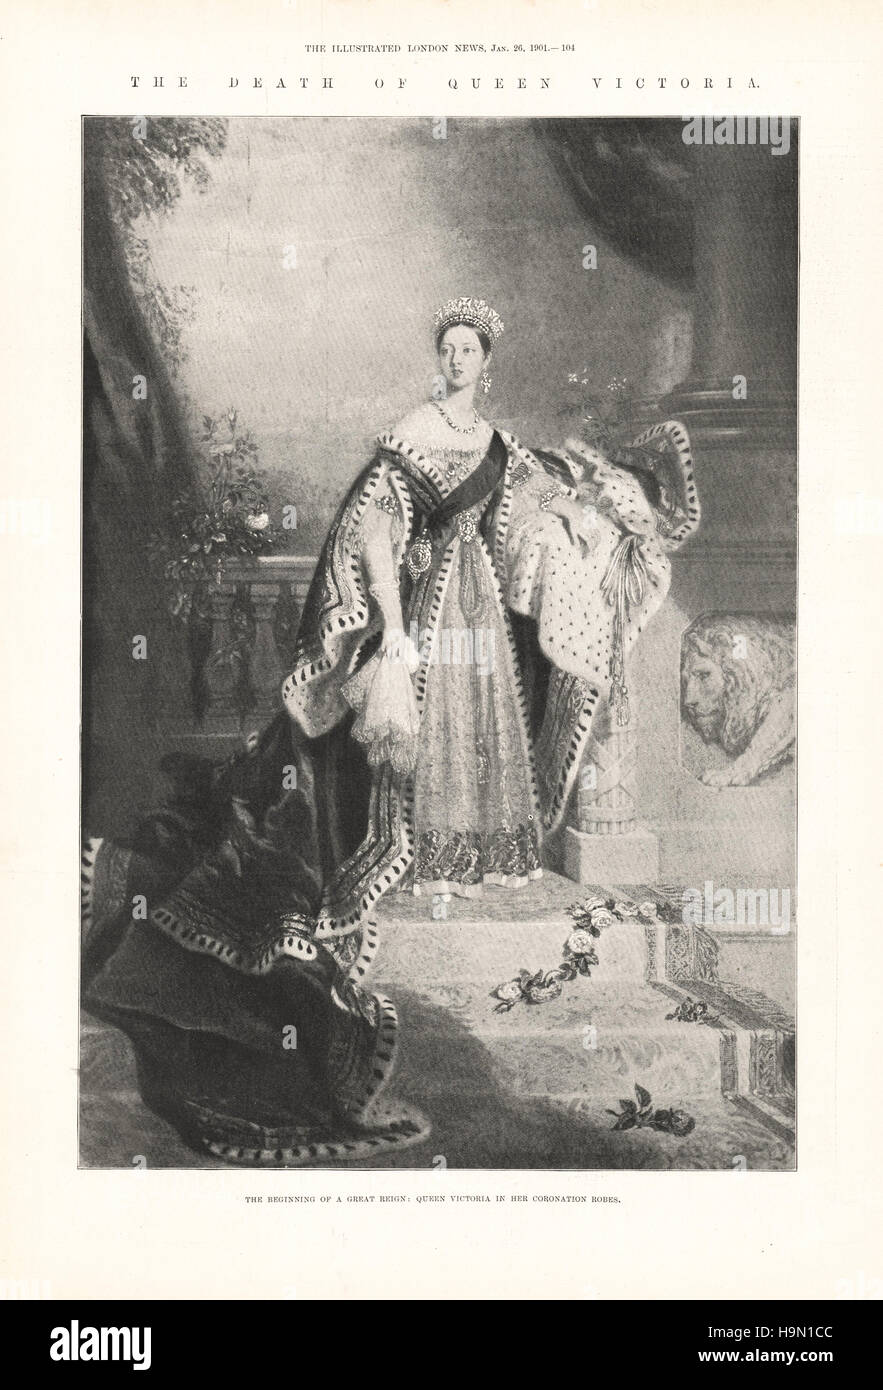 1901 Illustrated London News Queen Victoria in her coronation robes - Stock Image